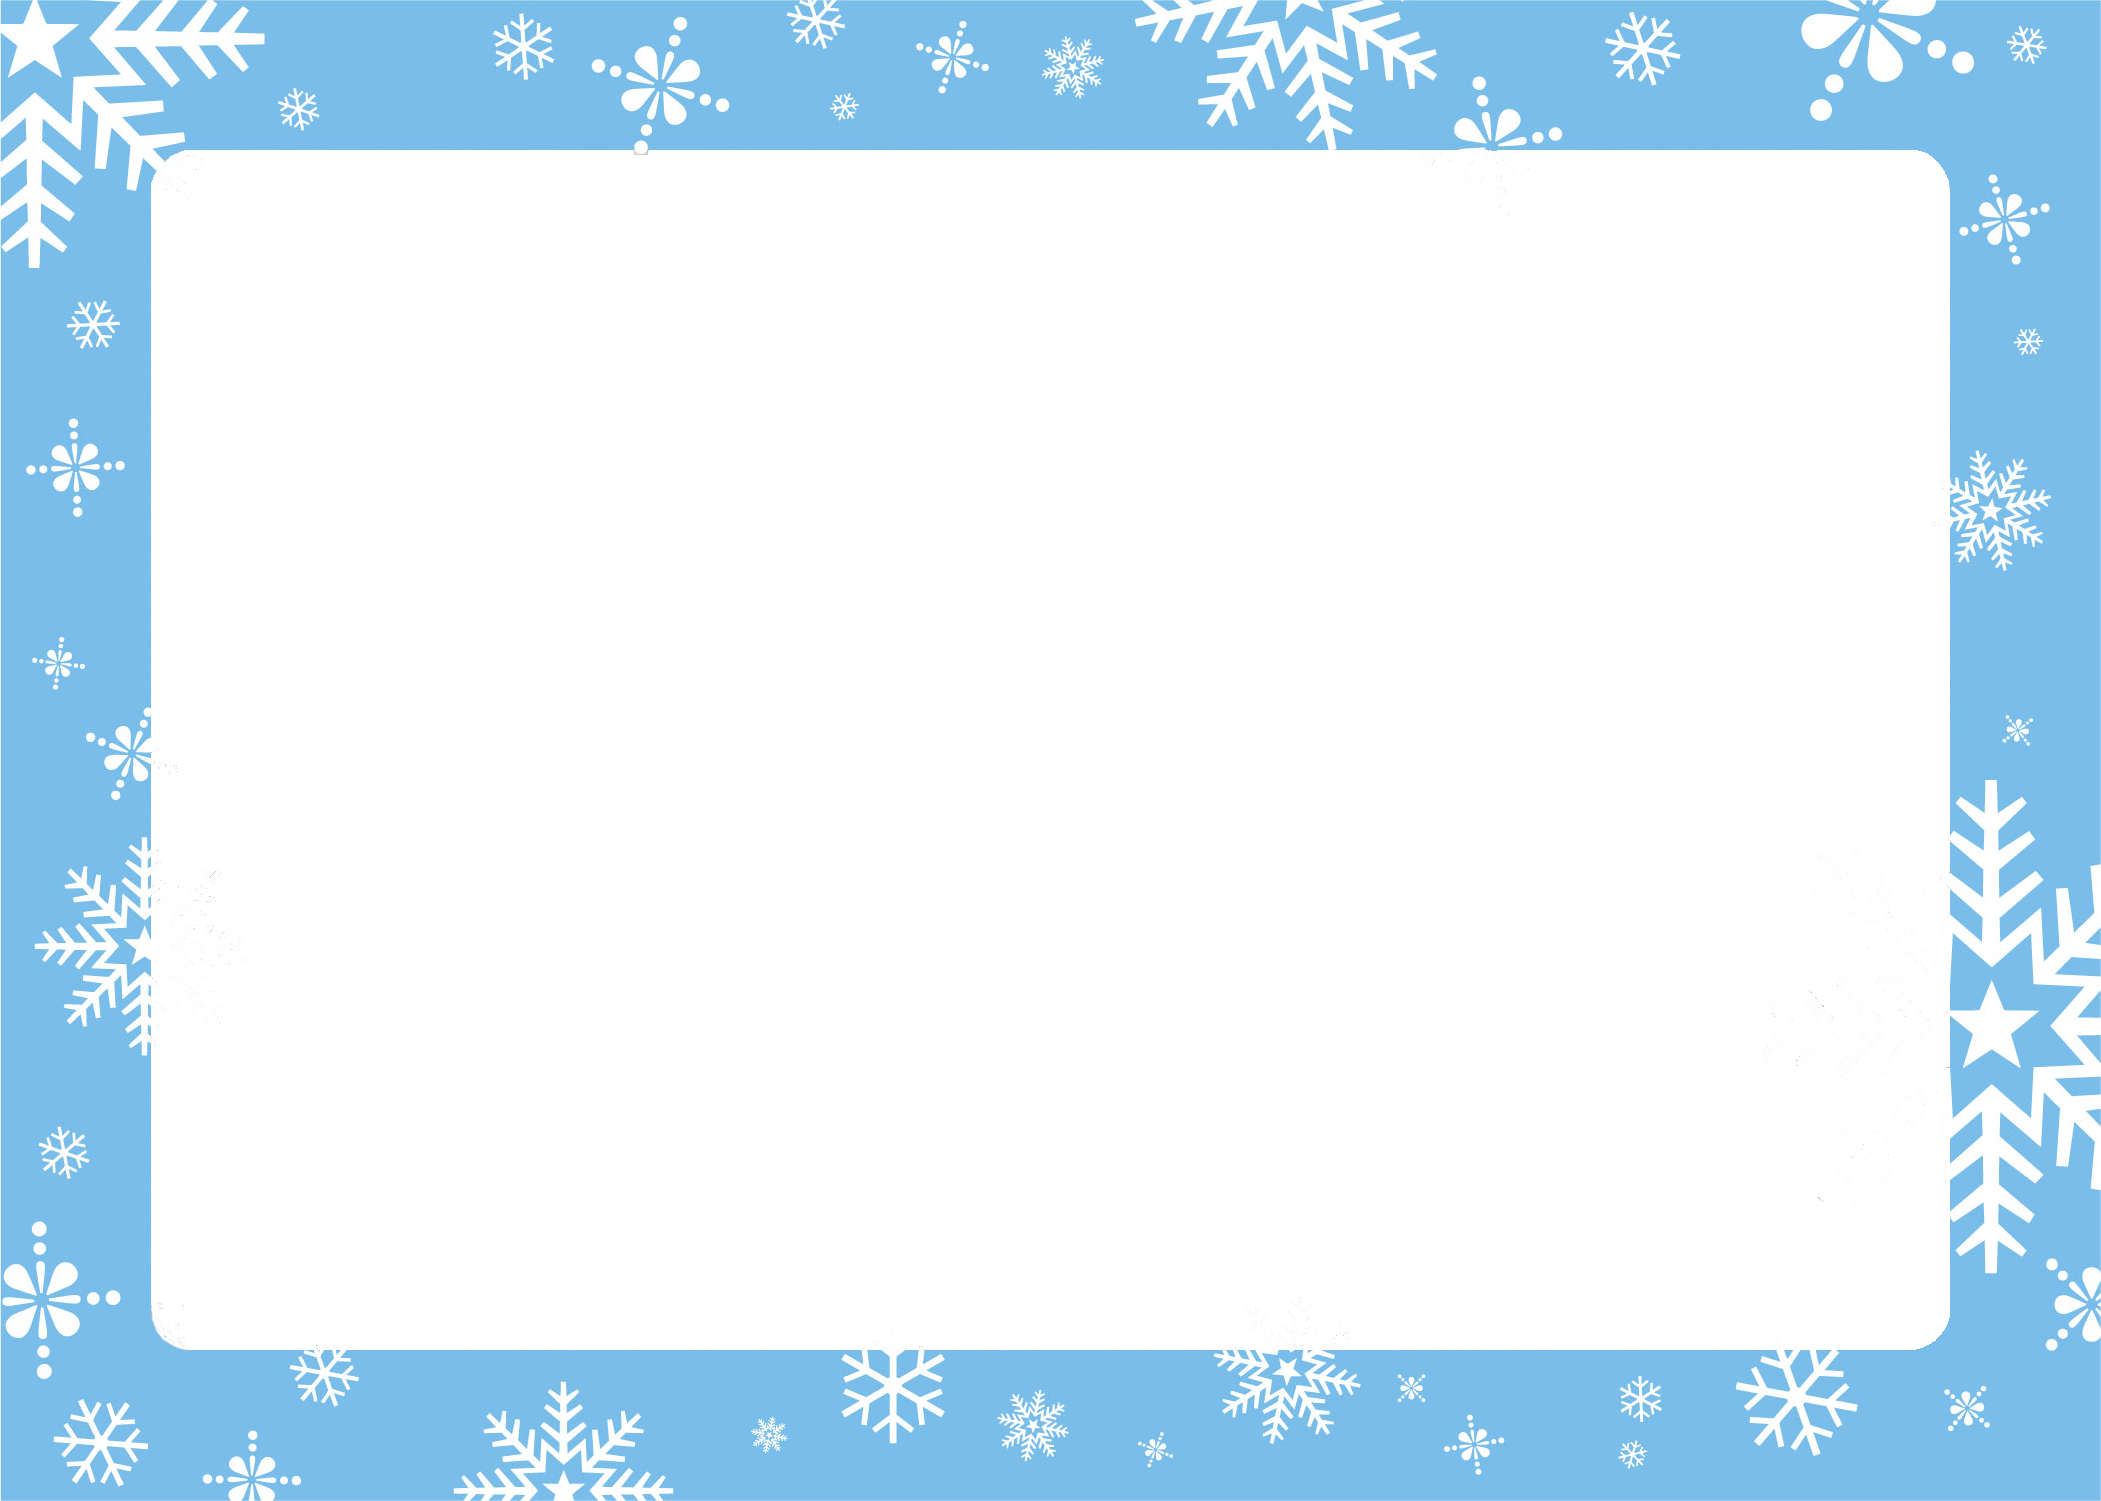 Free christmas picture border frames create holiday greeting card free christmas picture border frames create holiday greeting card templates on zazzle kristyandbryce Images